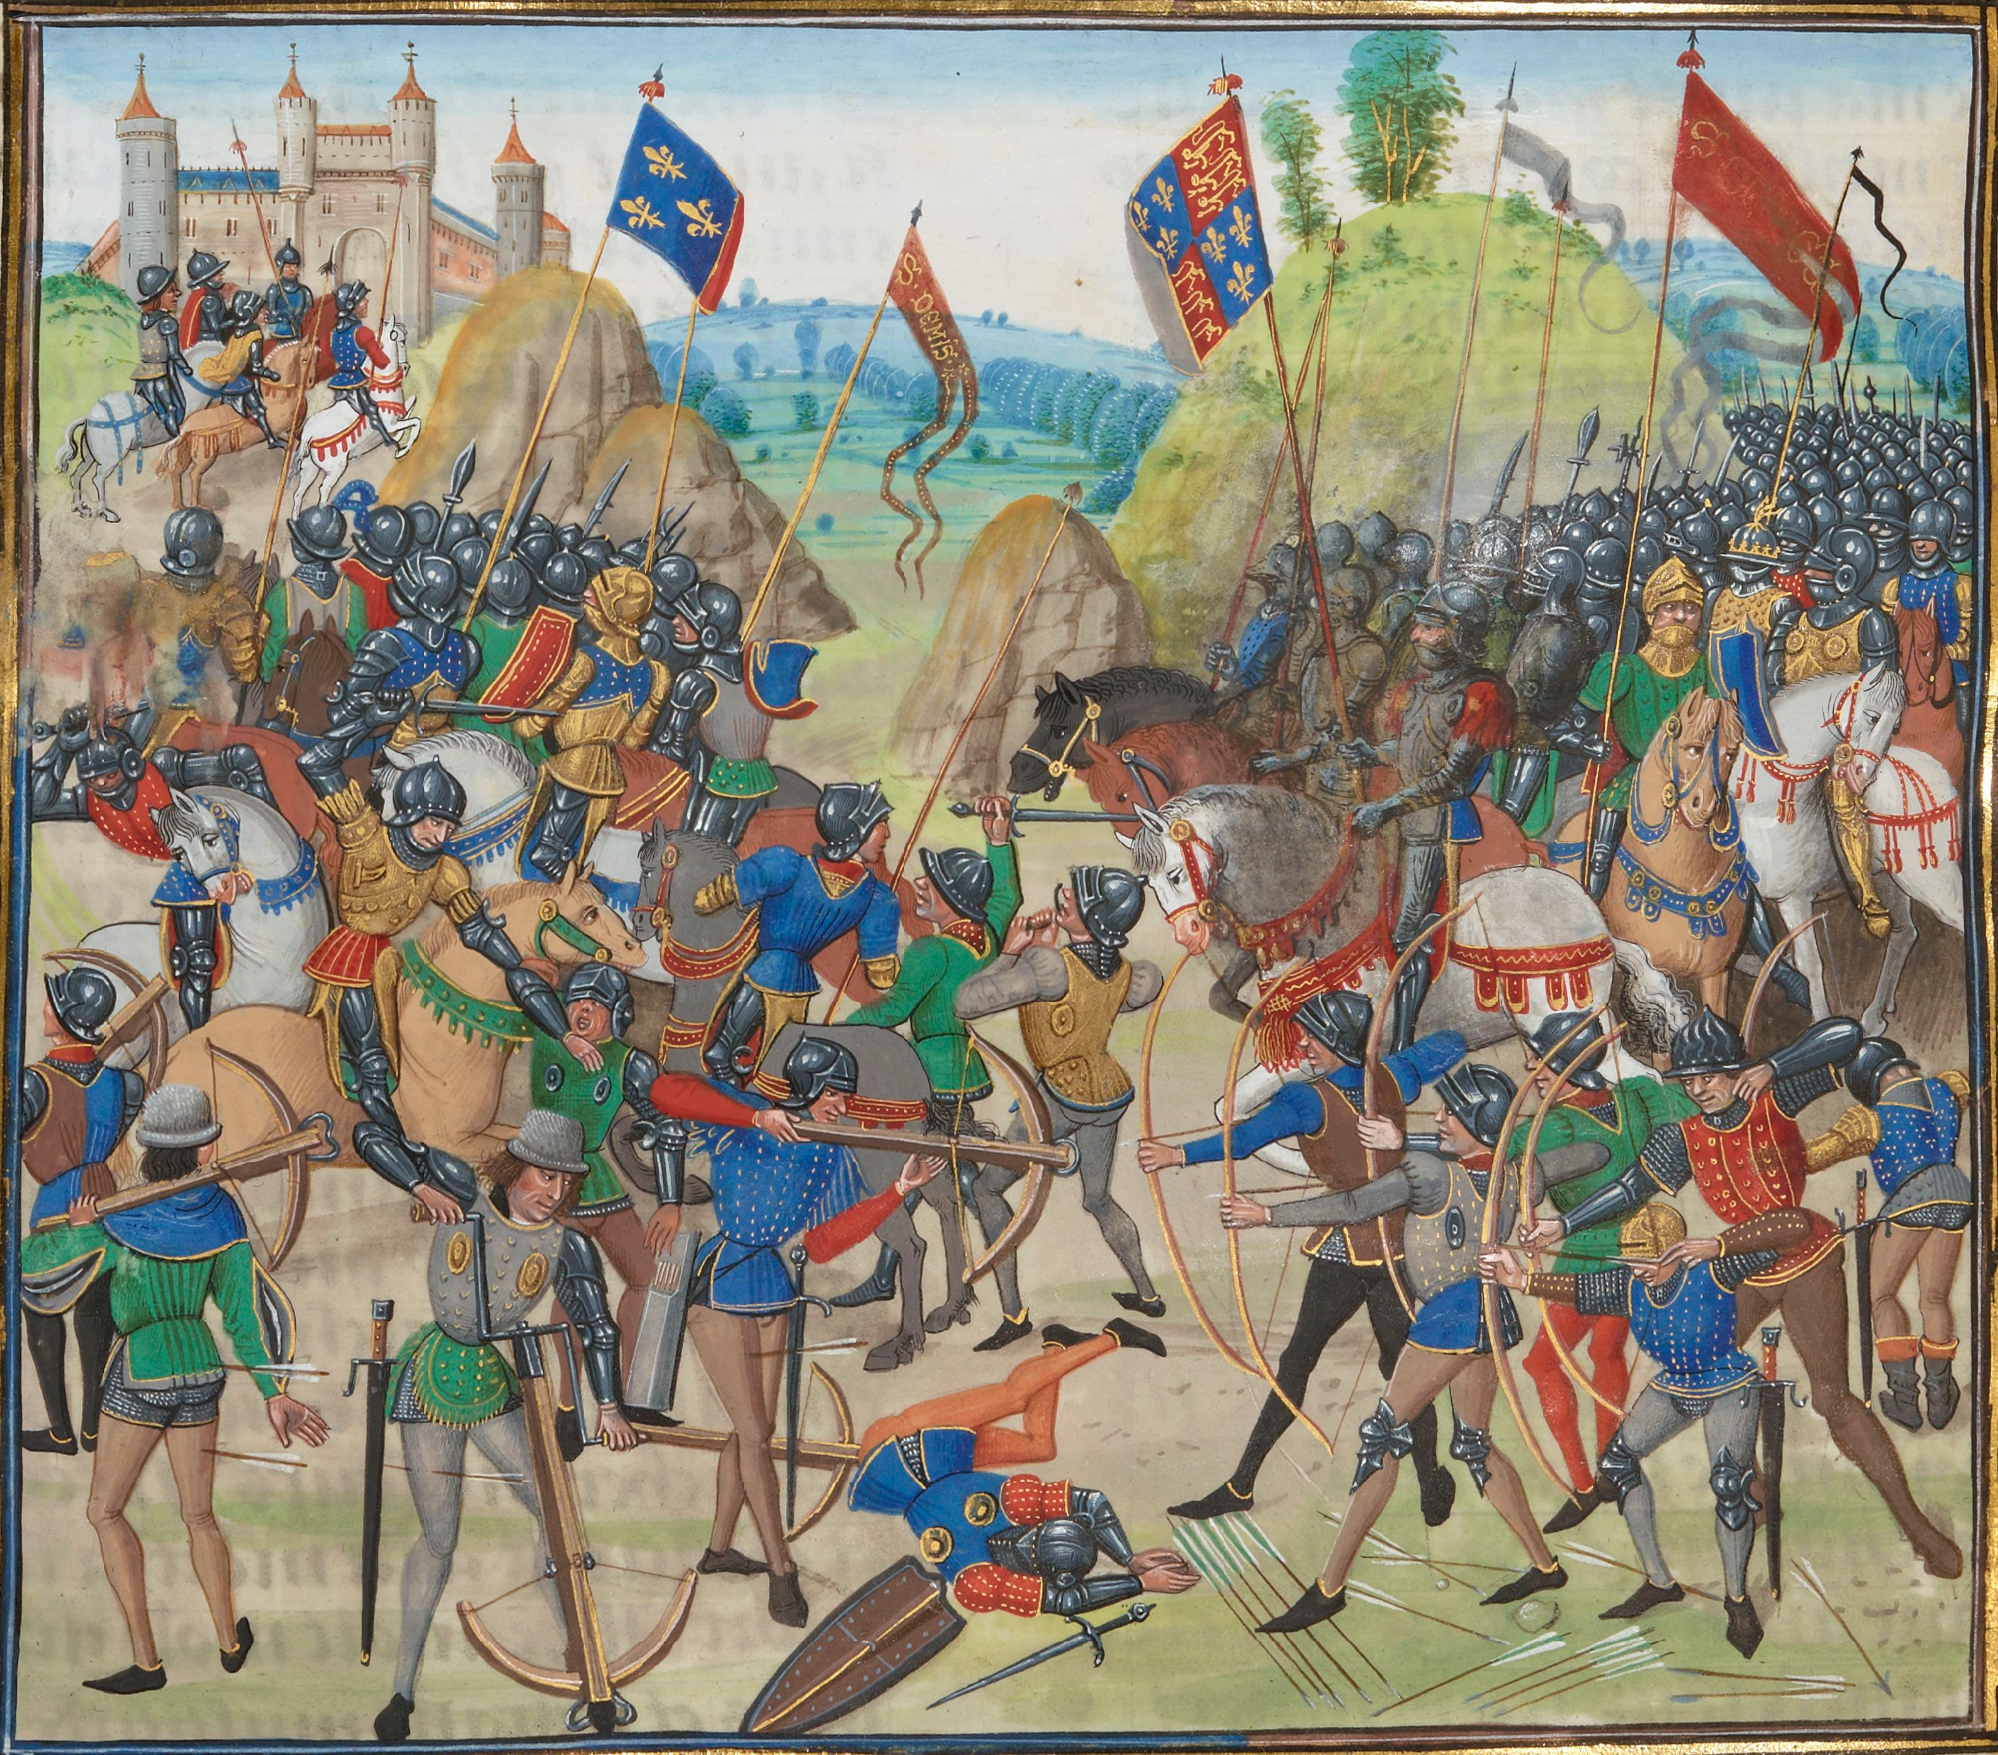 There was a time when England and France were deeply at war: Hundred Years War (1337-1453)